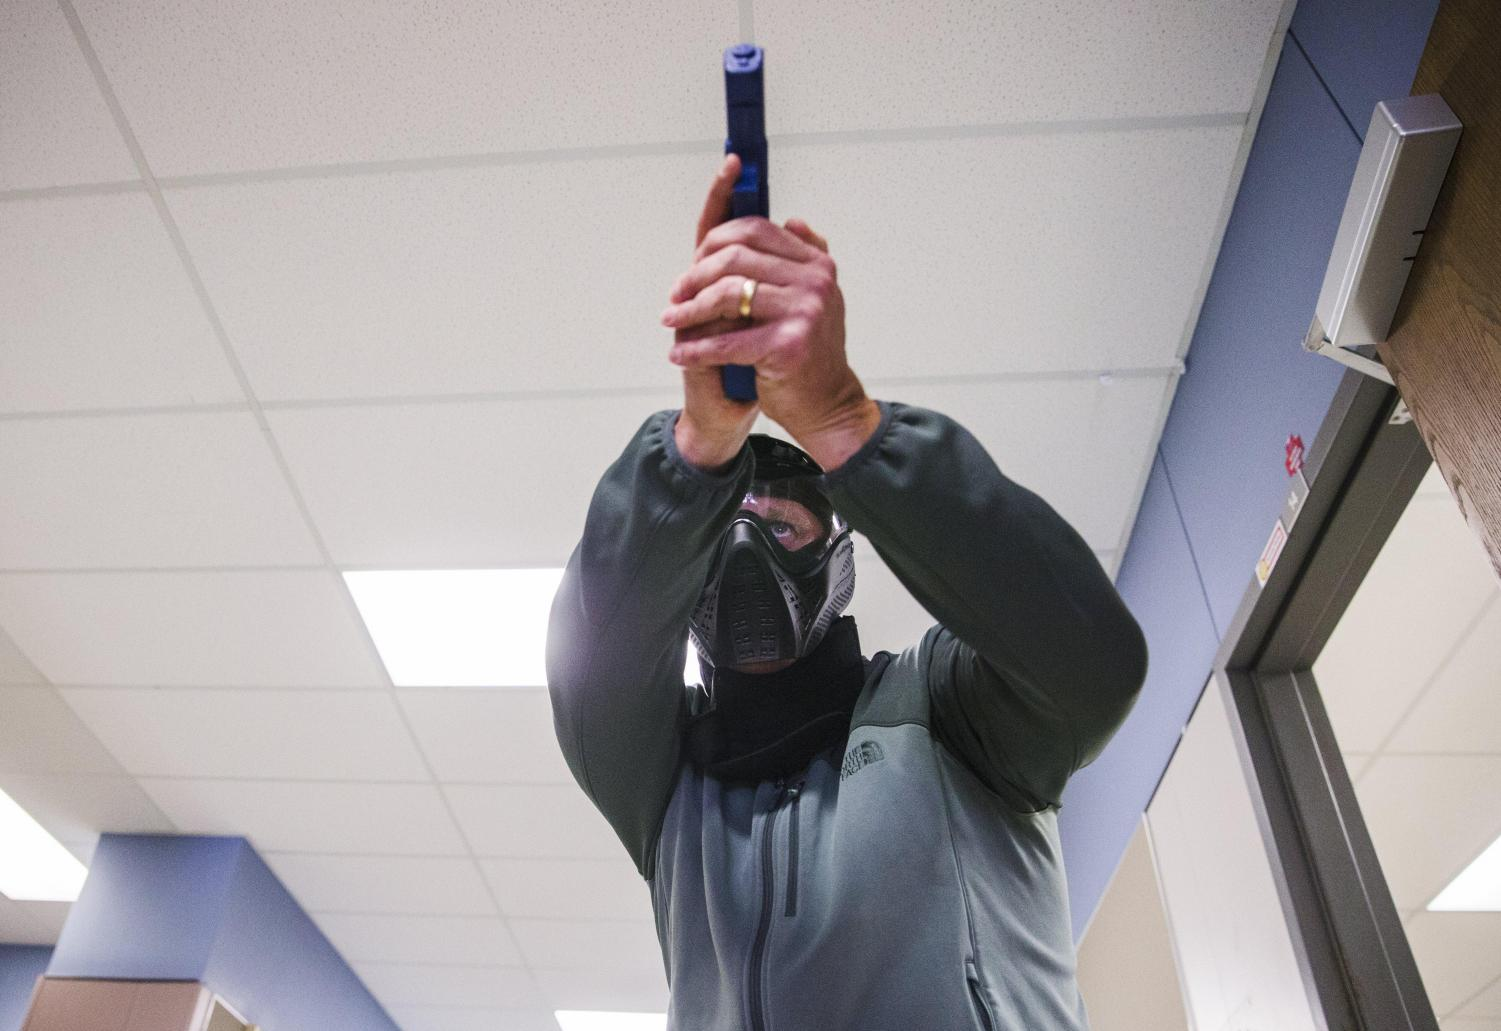 School marshal students demonstrate scenario exercises with simulated firearms as part of a Texas Commission on Law Enforcement training at Windermere Elementary School in 2018. [AMANDA VOISARD / AMERICAN-STATESMAN]